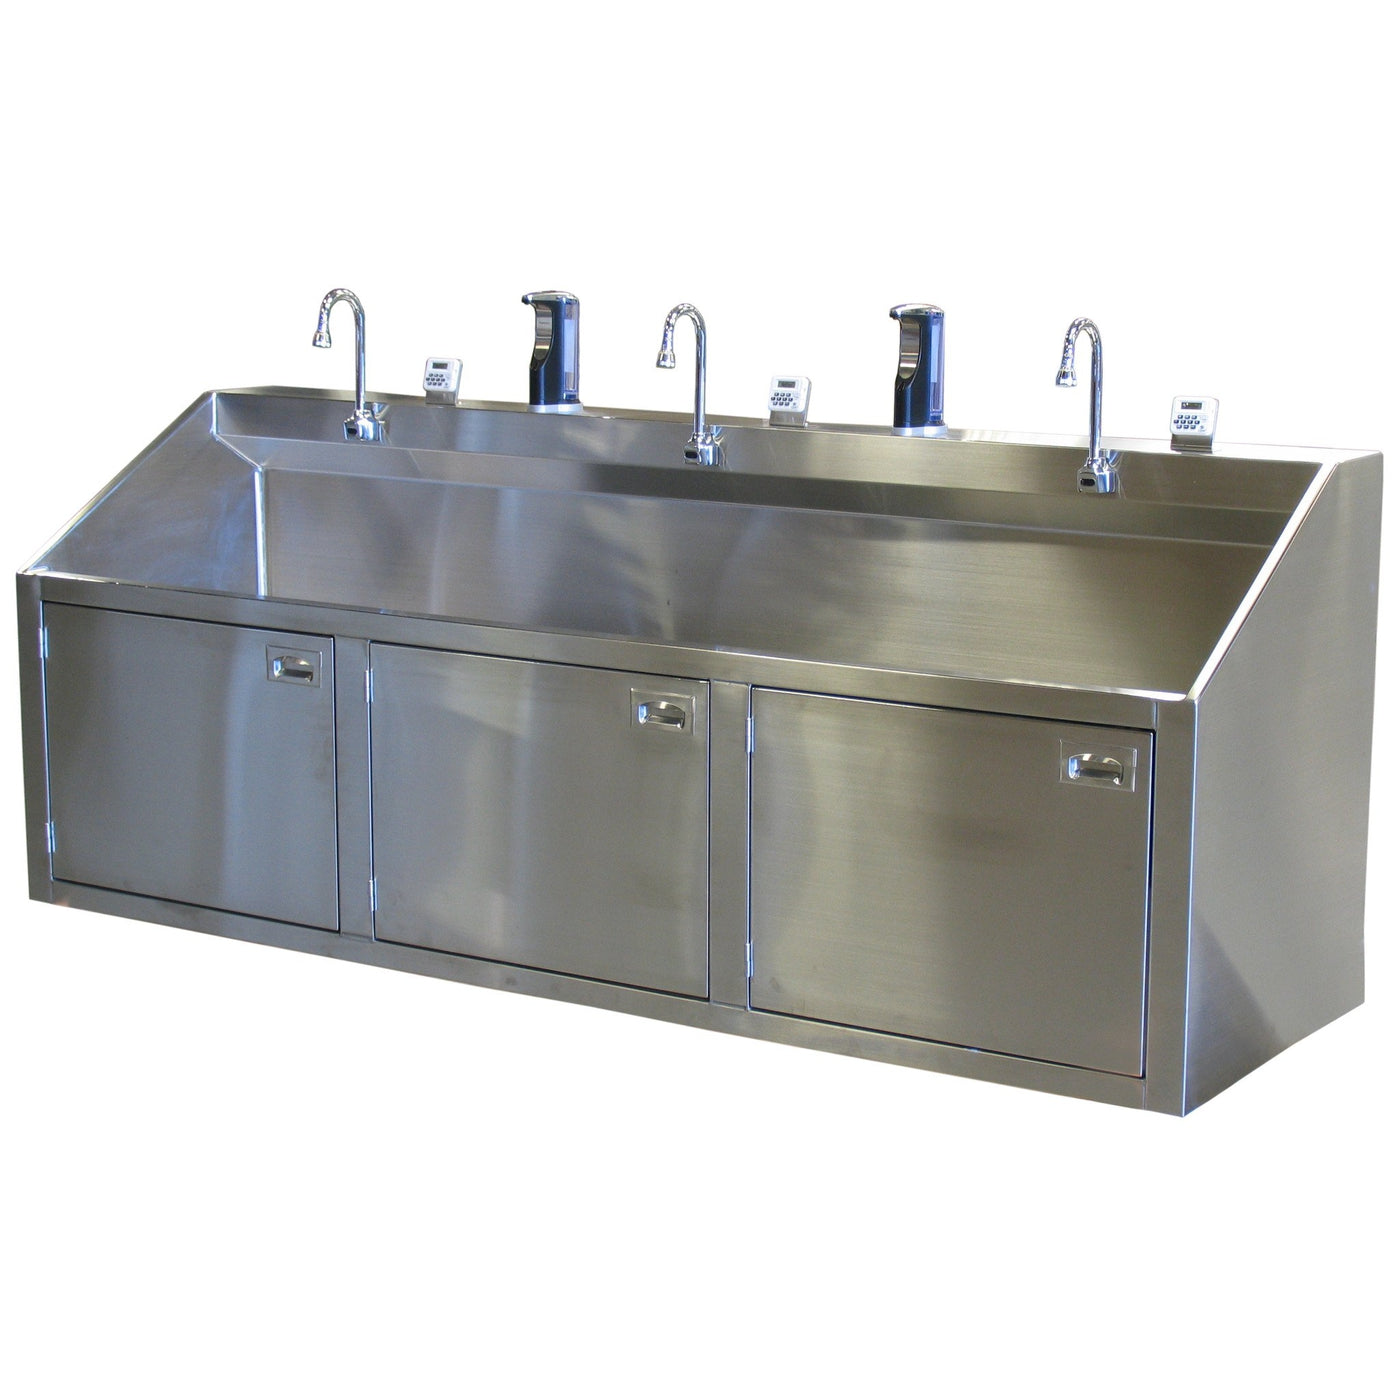 Triple Scrub Station-Sink Station-Mortech Manufacturing Company Inc. Quality Stainless Steel Autopsy, Morgue, Funeral Home, Necropsy, Veterinary / Anatomy, Dissection Equipment and Accessories